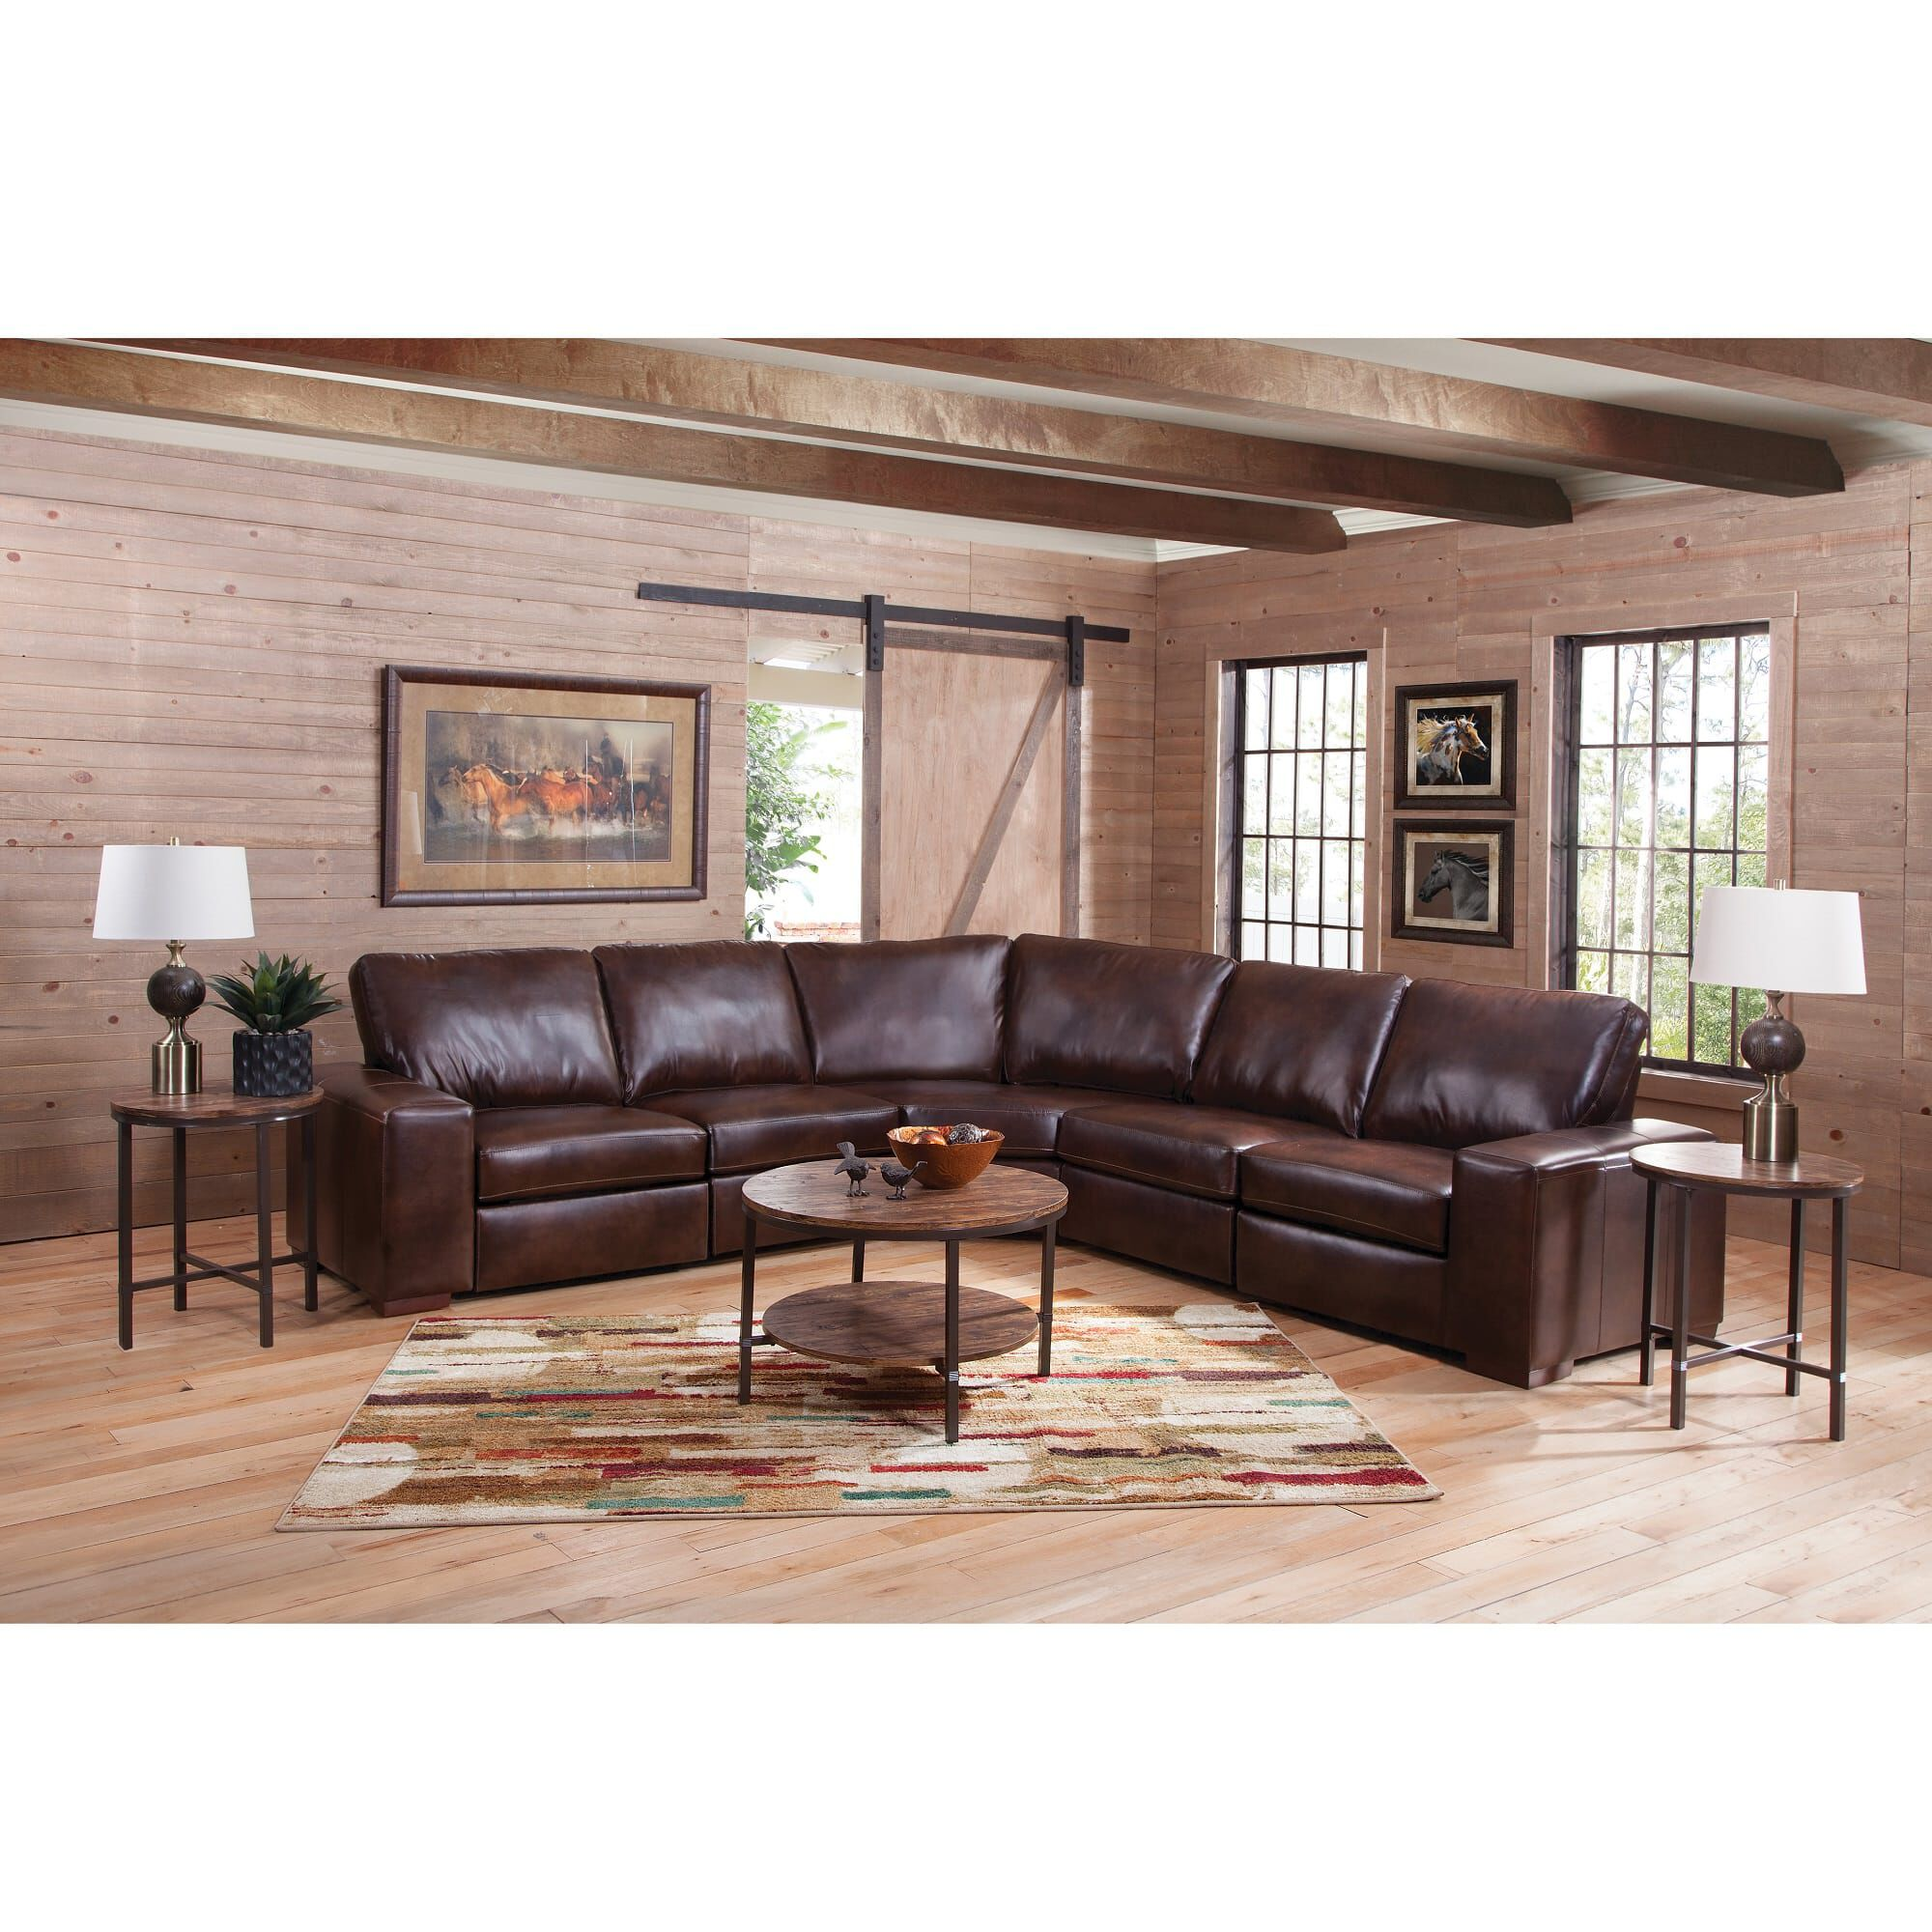 Beau 5 Piece Daytona Living Room Collection